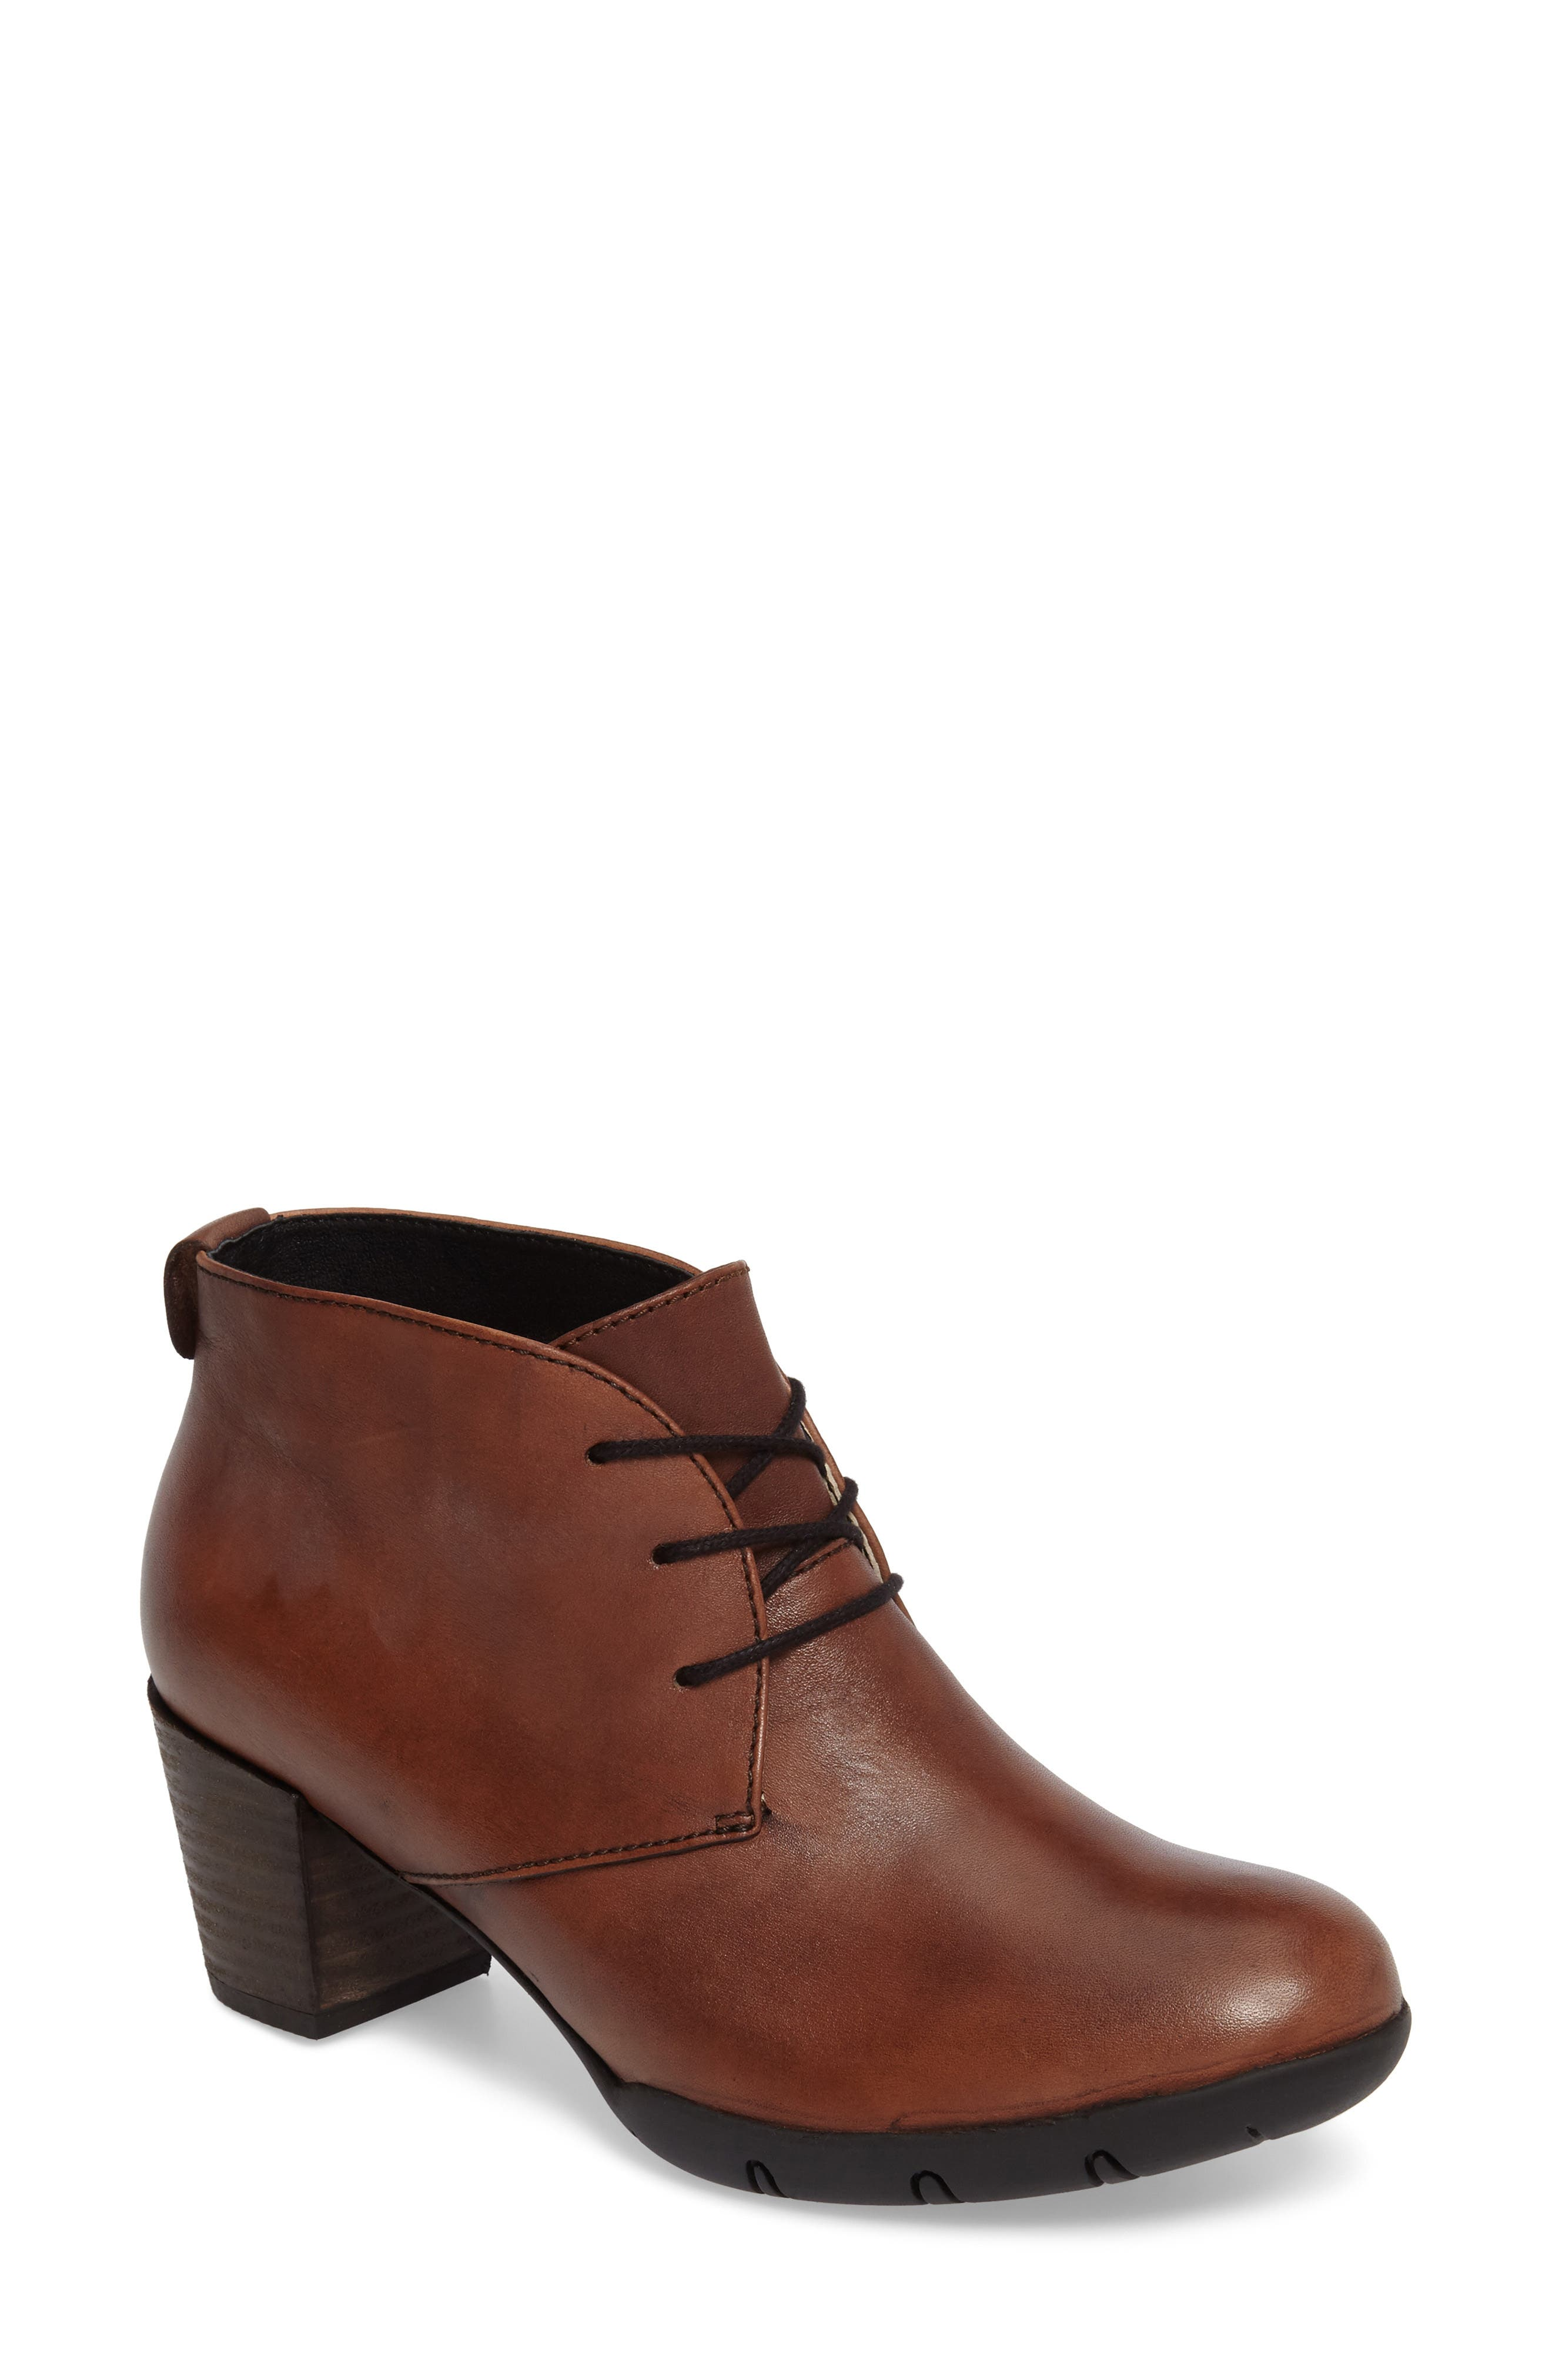 Bighorn Bootie,                             Main thumbnail 1, color,                             COGNAC LEATHER